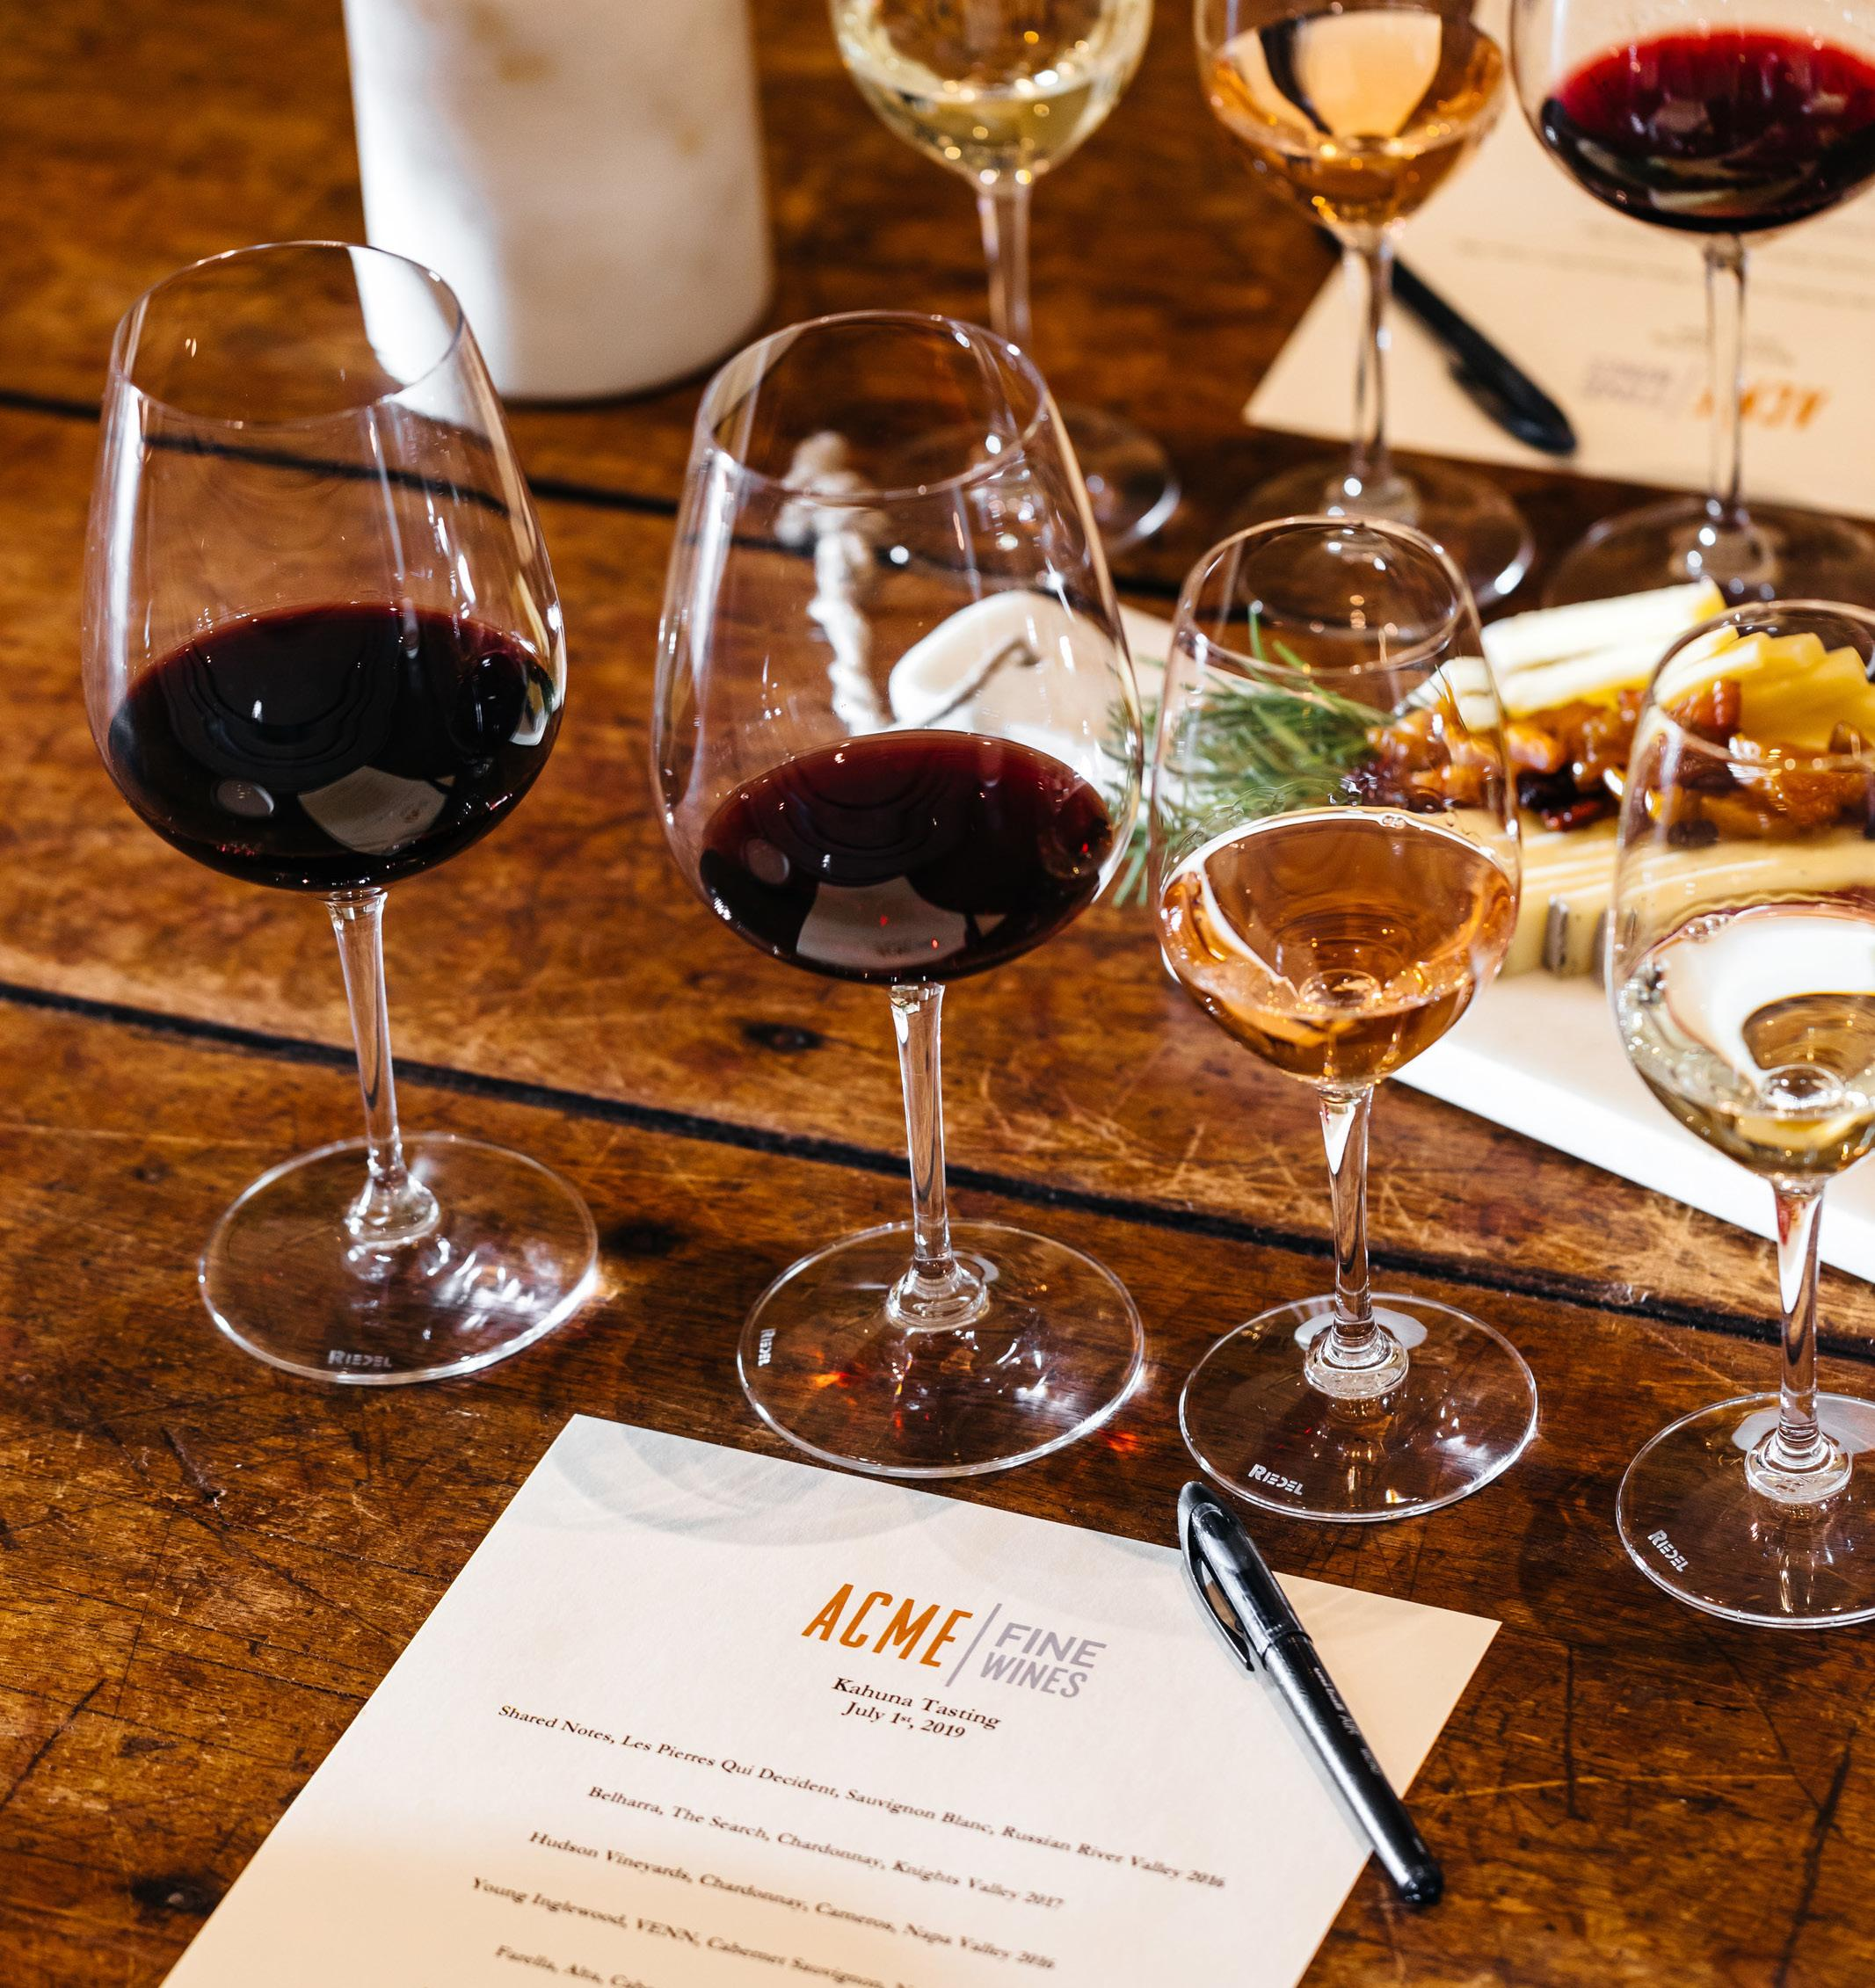 Page 60 of ACME Fine Wines' Private Tastings for Summer and Fall